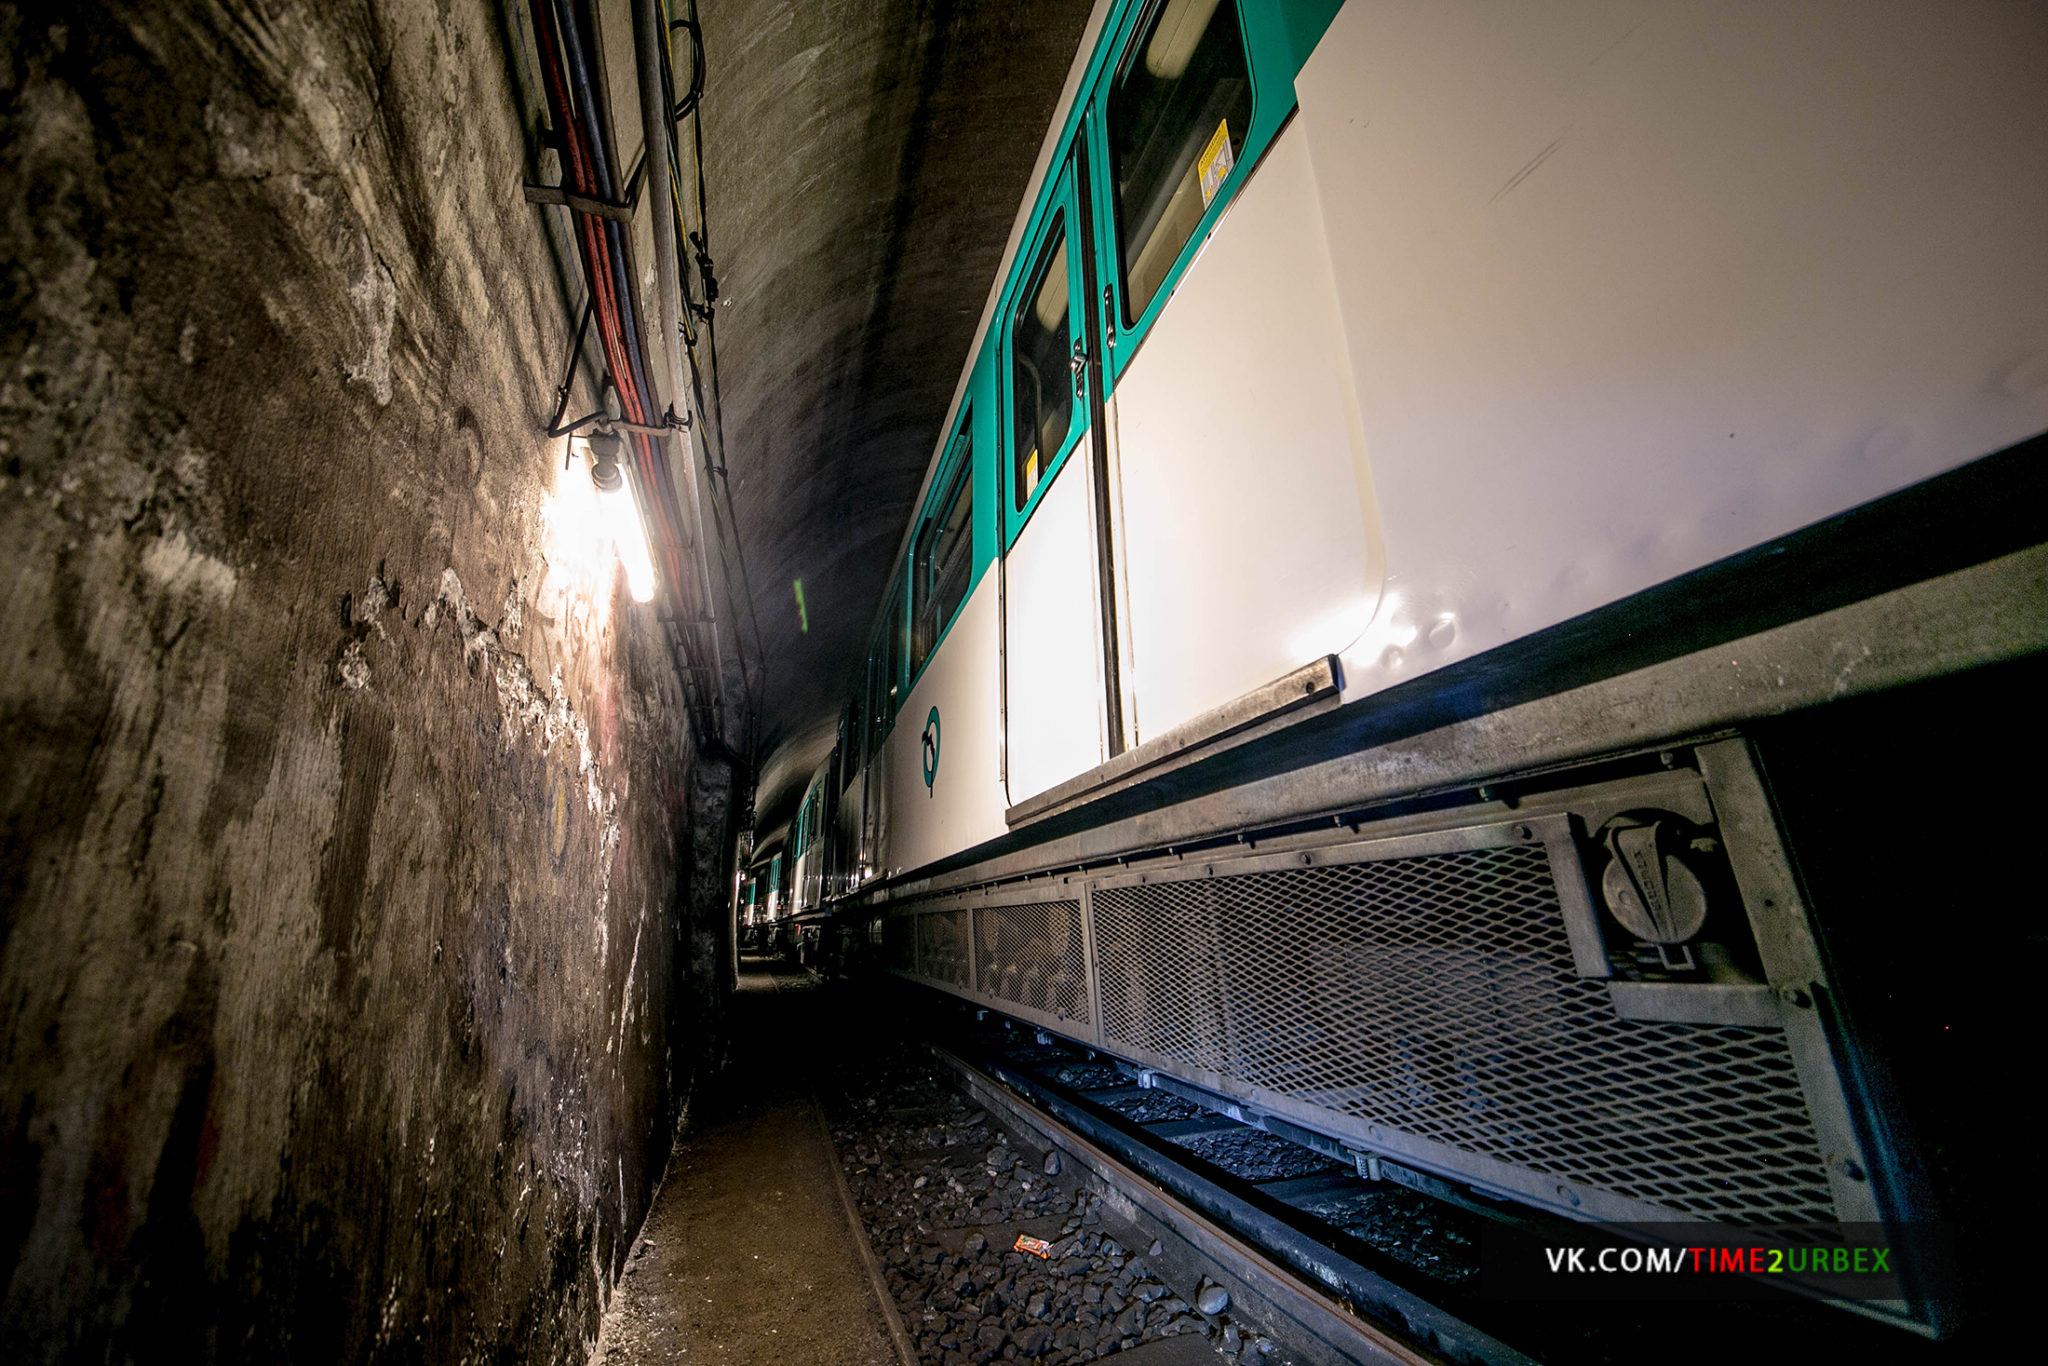 3-1 7 GHOST STATIONS OF THE PARIS METRO AND HOW TO GET INTO THE ILLEGALLY + UNUSUAL TUNNELS + RER